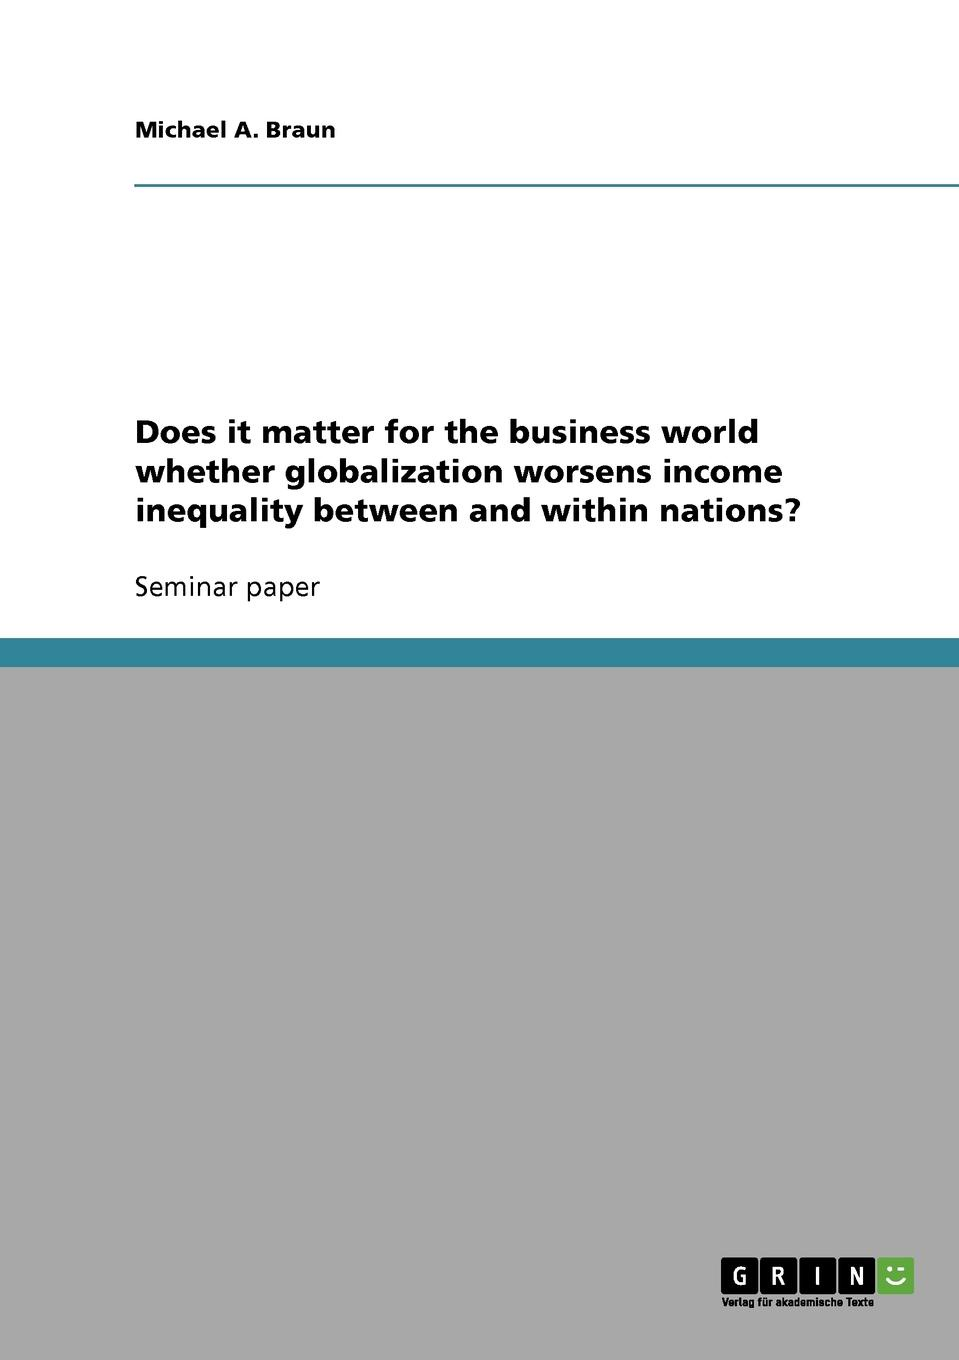 Michael A. Braun Does it matter for the business world whether globalization worsens income inequality between and within nations. globalization and literature